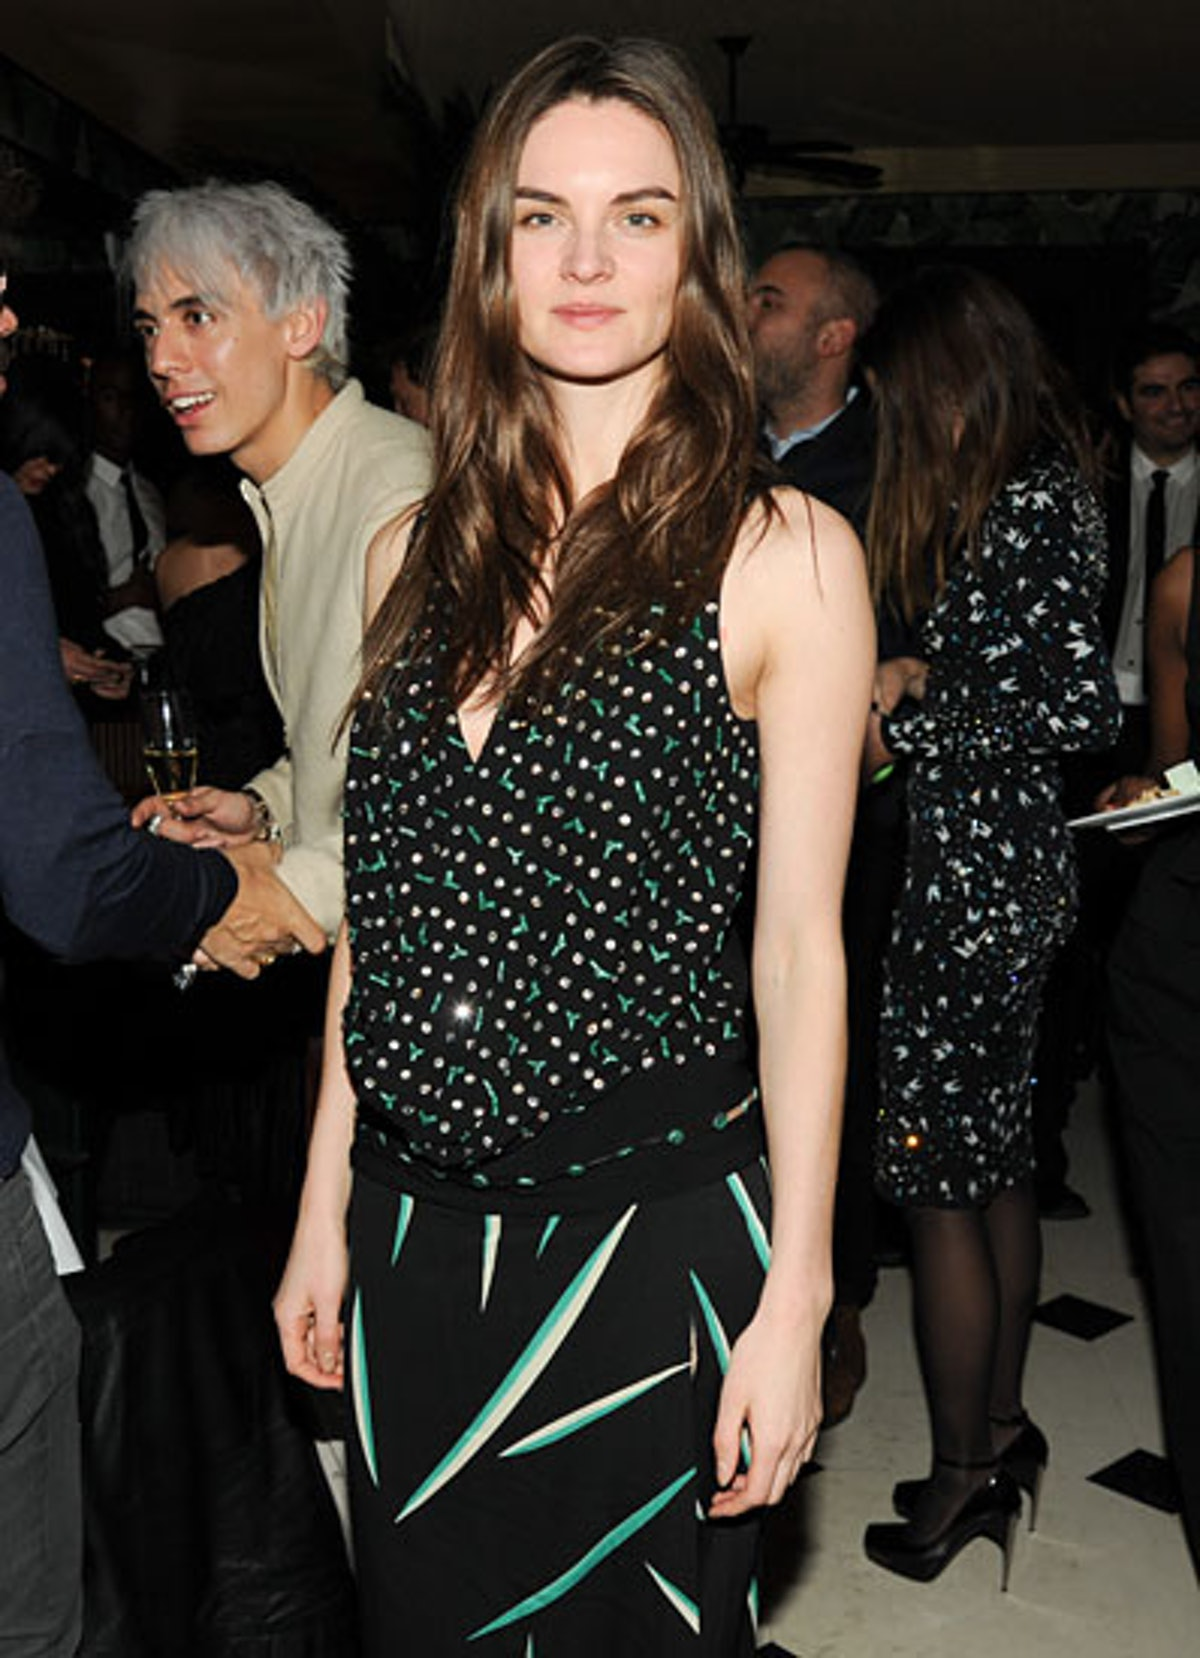 pass-dvf-after-party-02-v.jpg